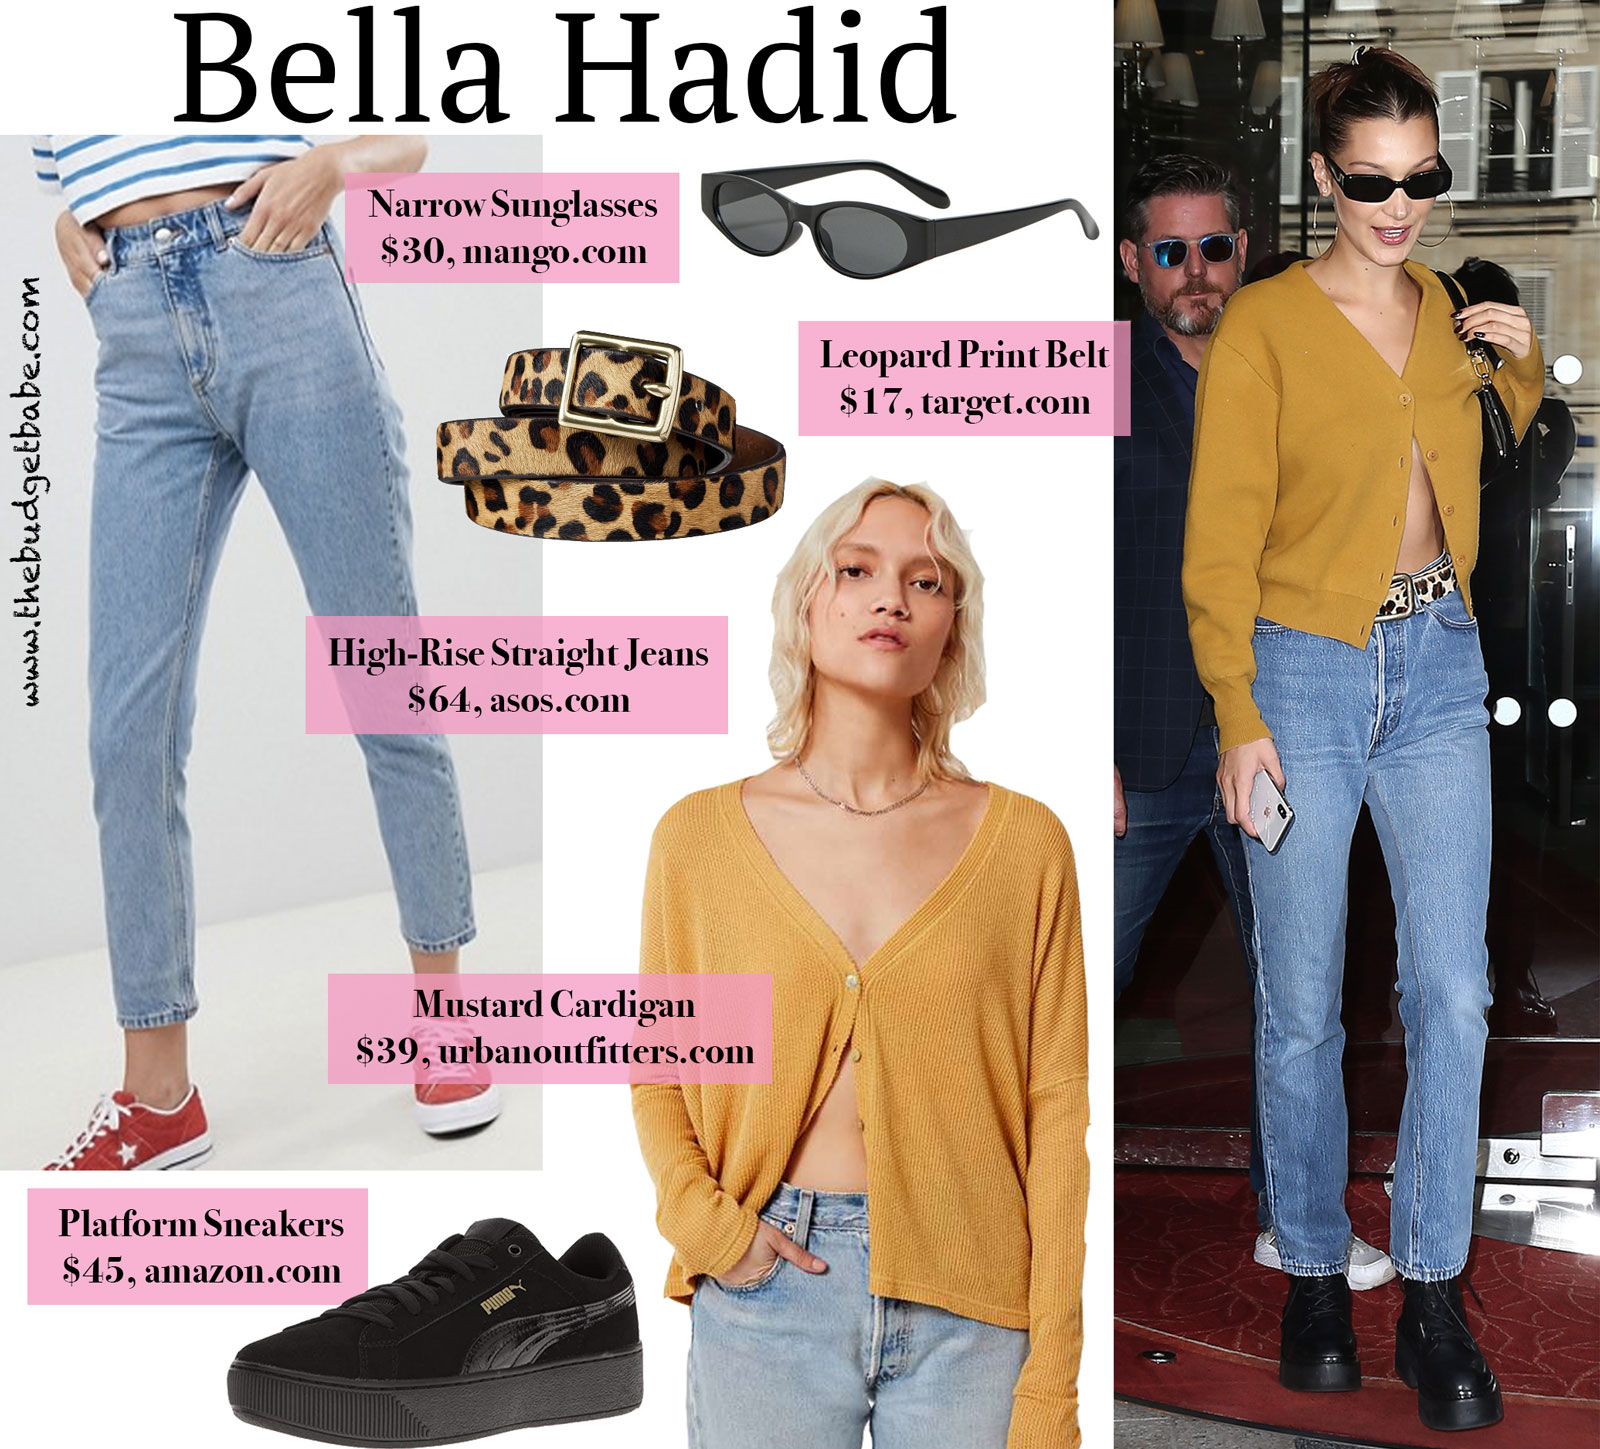 Bella Hadid Mustard Cardigan and Leopard Belt Look for Less